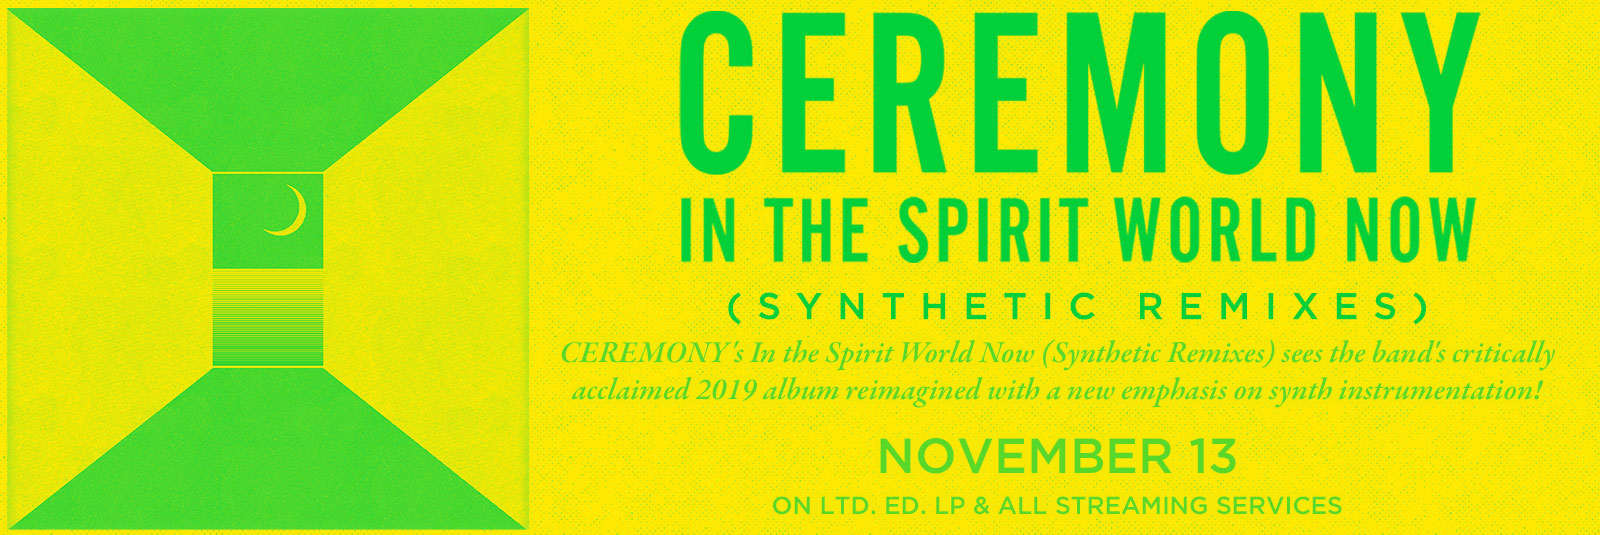 ceremony-in-the-spirit-world-now-synthetic-remix-relapse